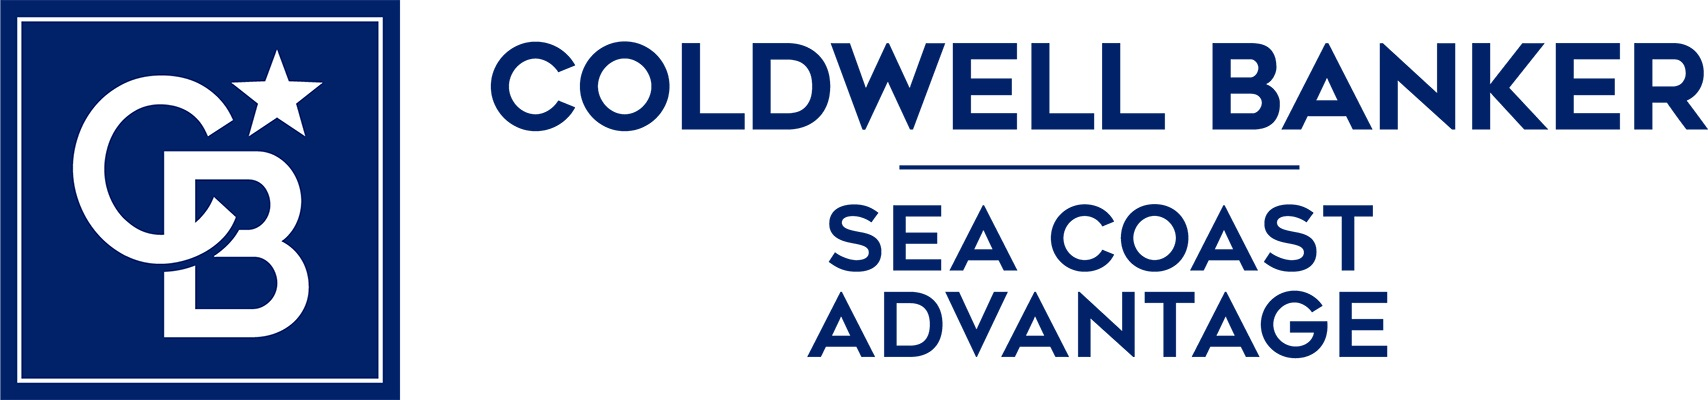 Ann Hall - Coldwell Banker Sea Coast Advantage Realty